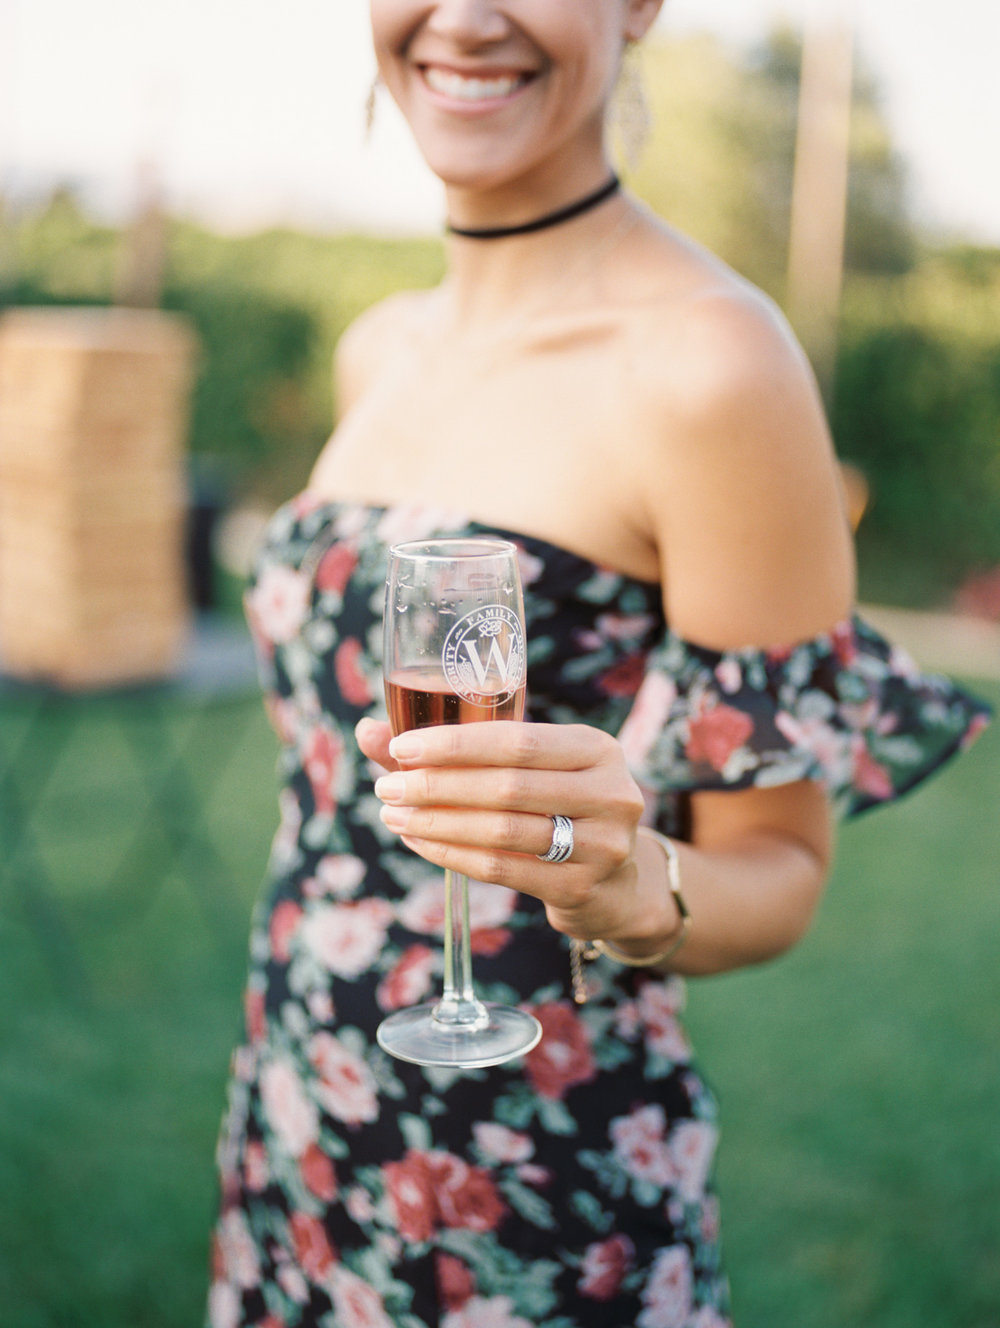 Cocktail hour at Wiens Family Cellars | Harrison & Jocelyne's gorgeous Temecula wedding day at Wiens Family Cellars captured by Temecula wedding photographers Betsy & John